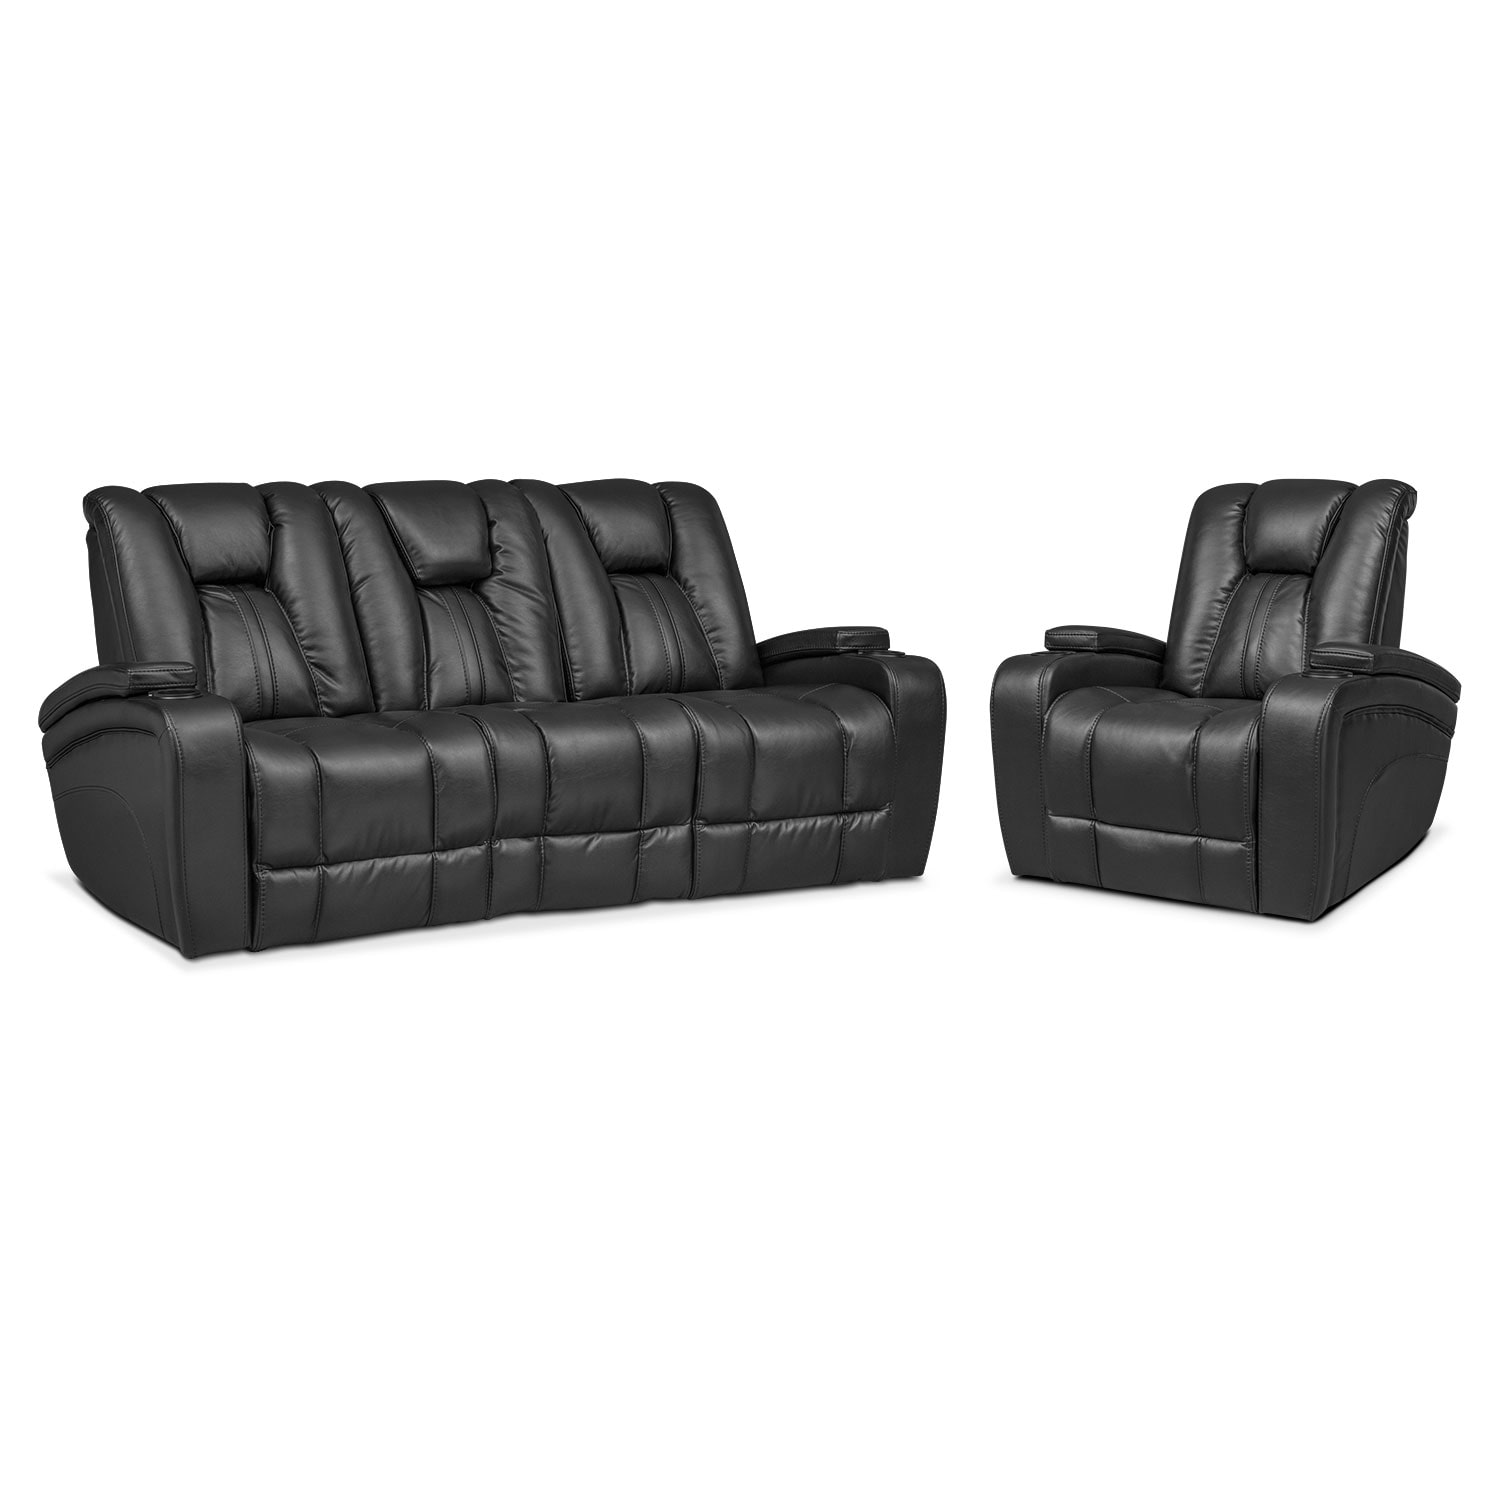 Pulsar dual power reclining sofa and power recliner set for Signature furniture